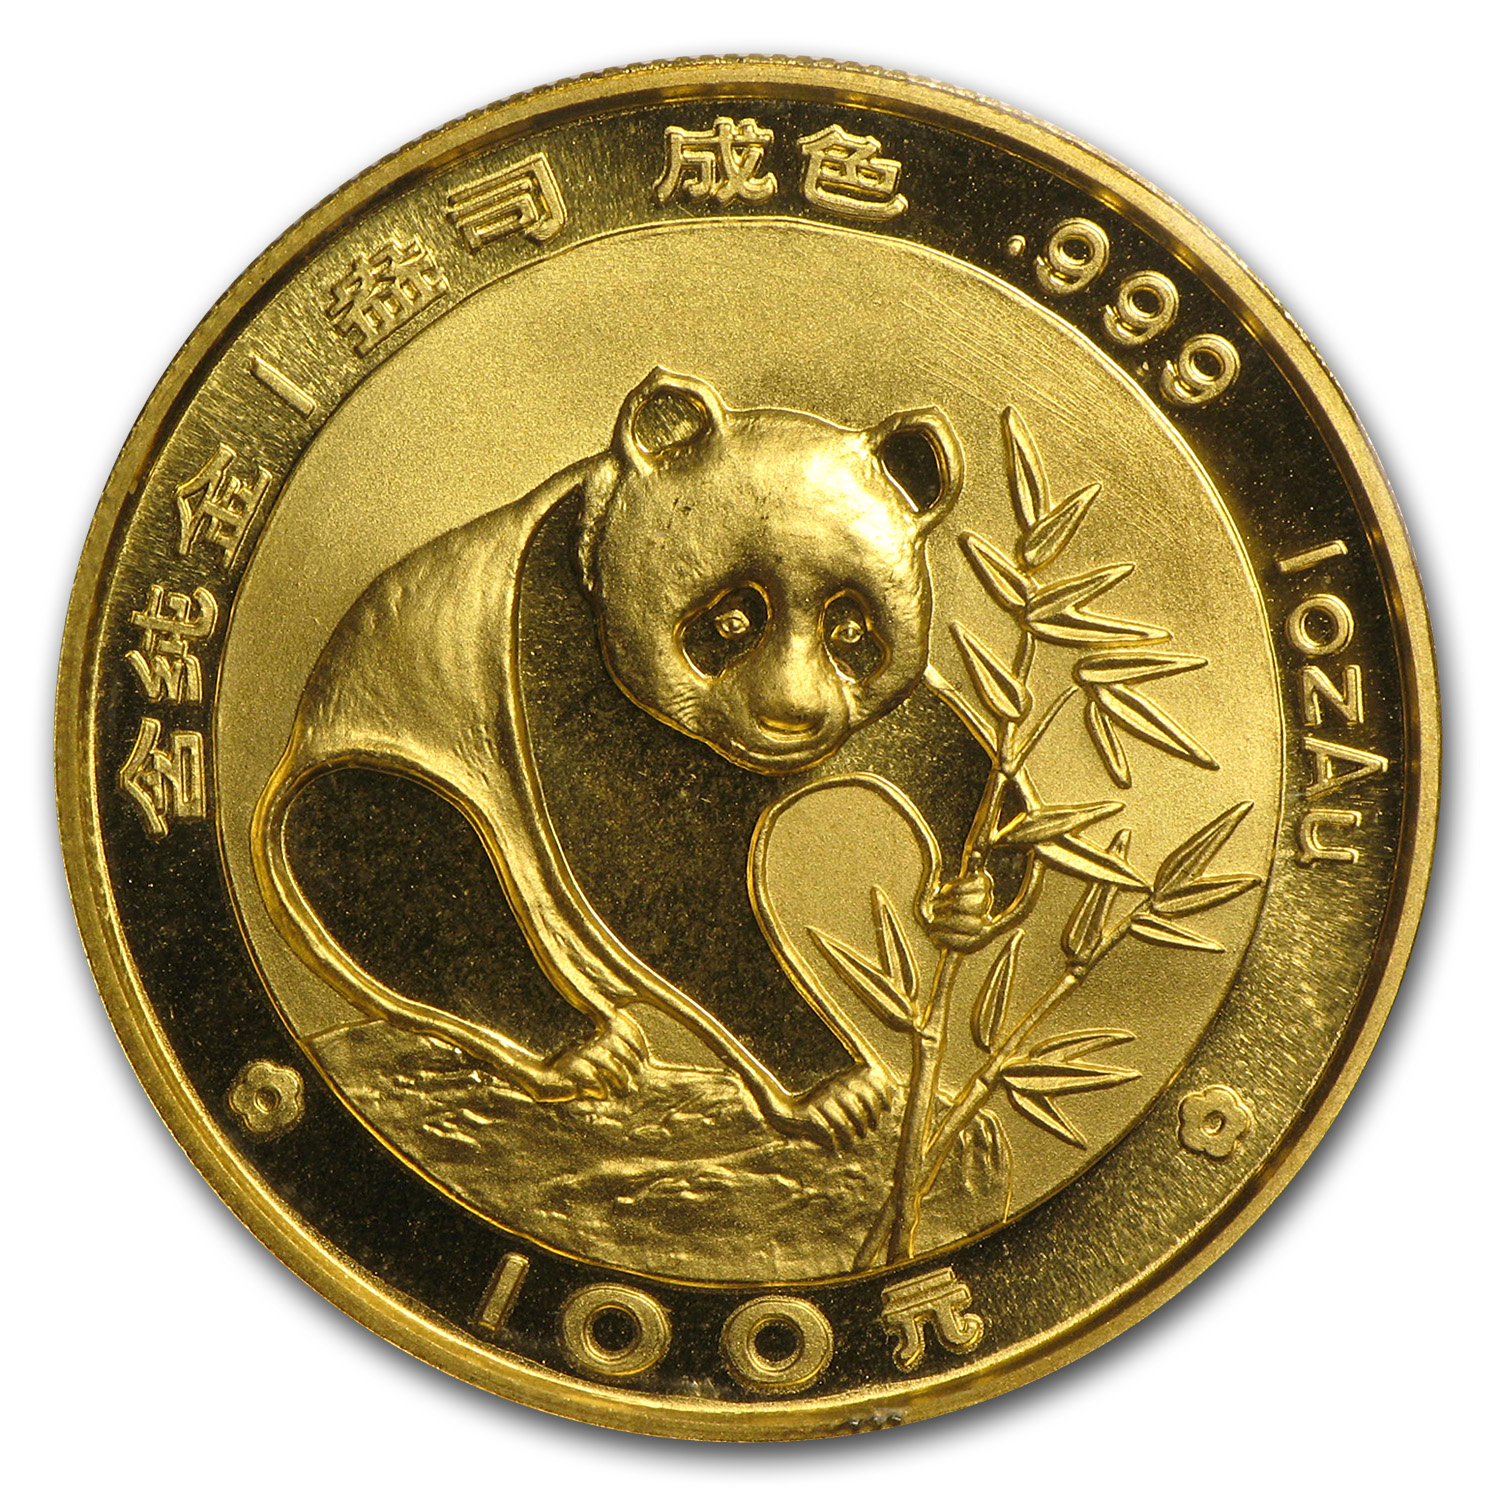 1988 1 oz Gold Chinese Panda (Sealed Sheet of 10)